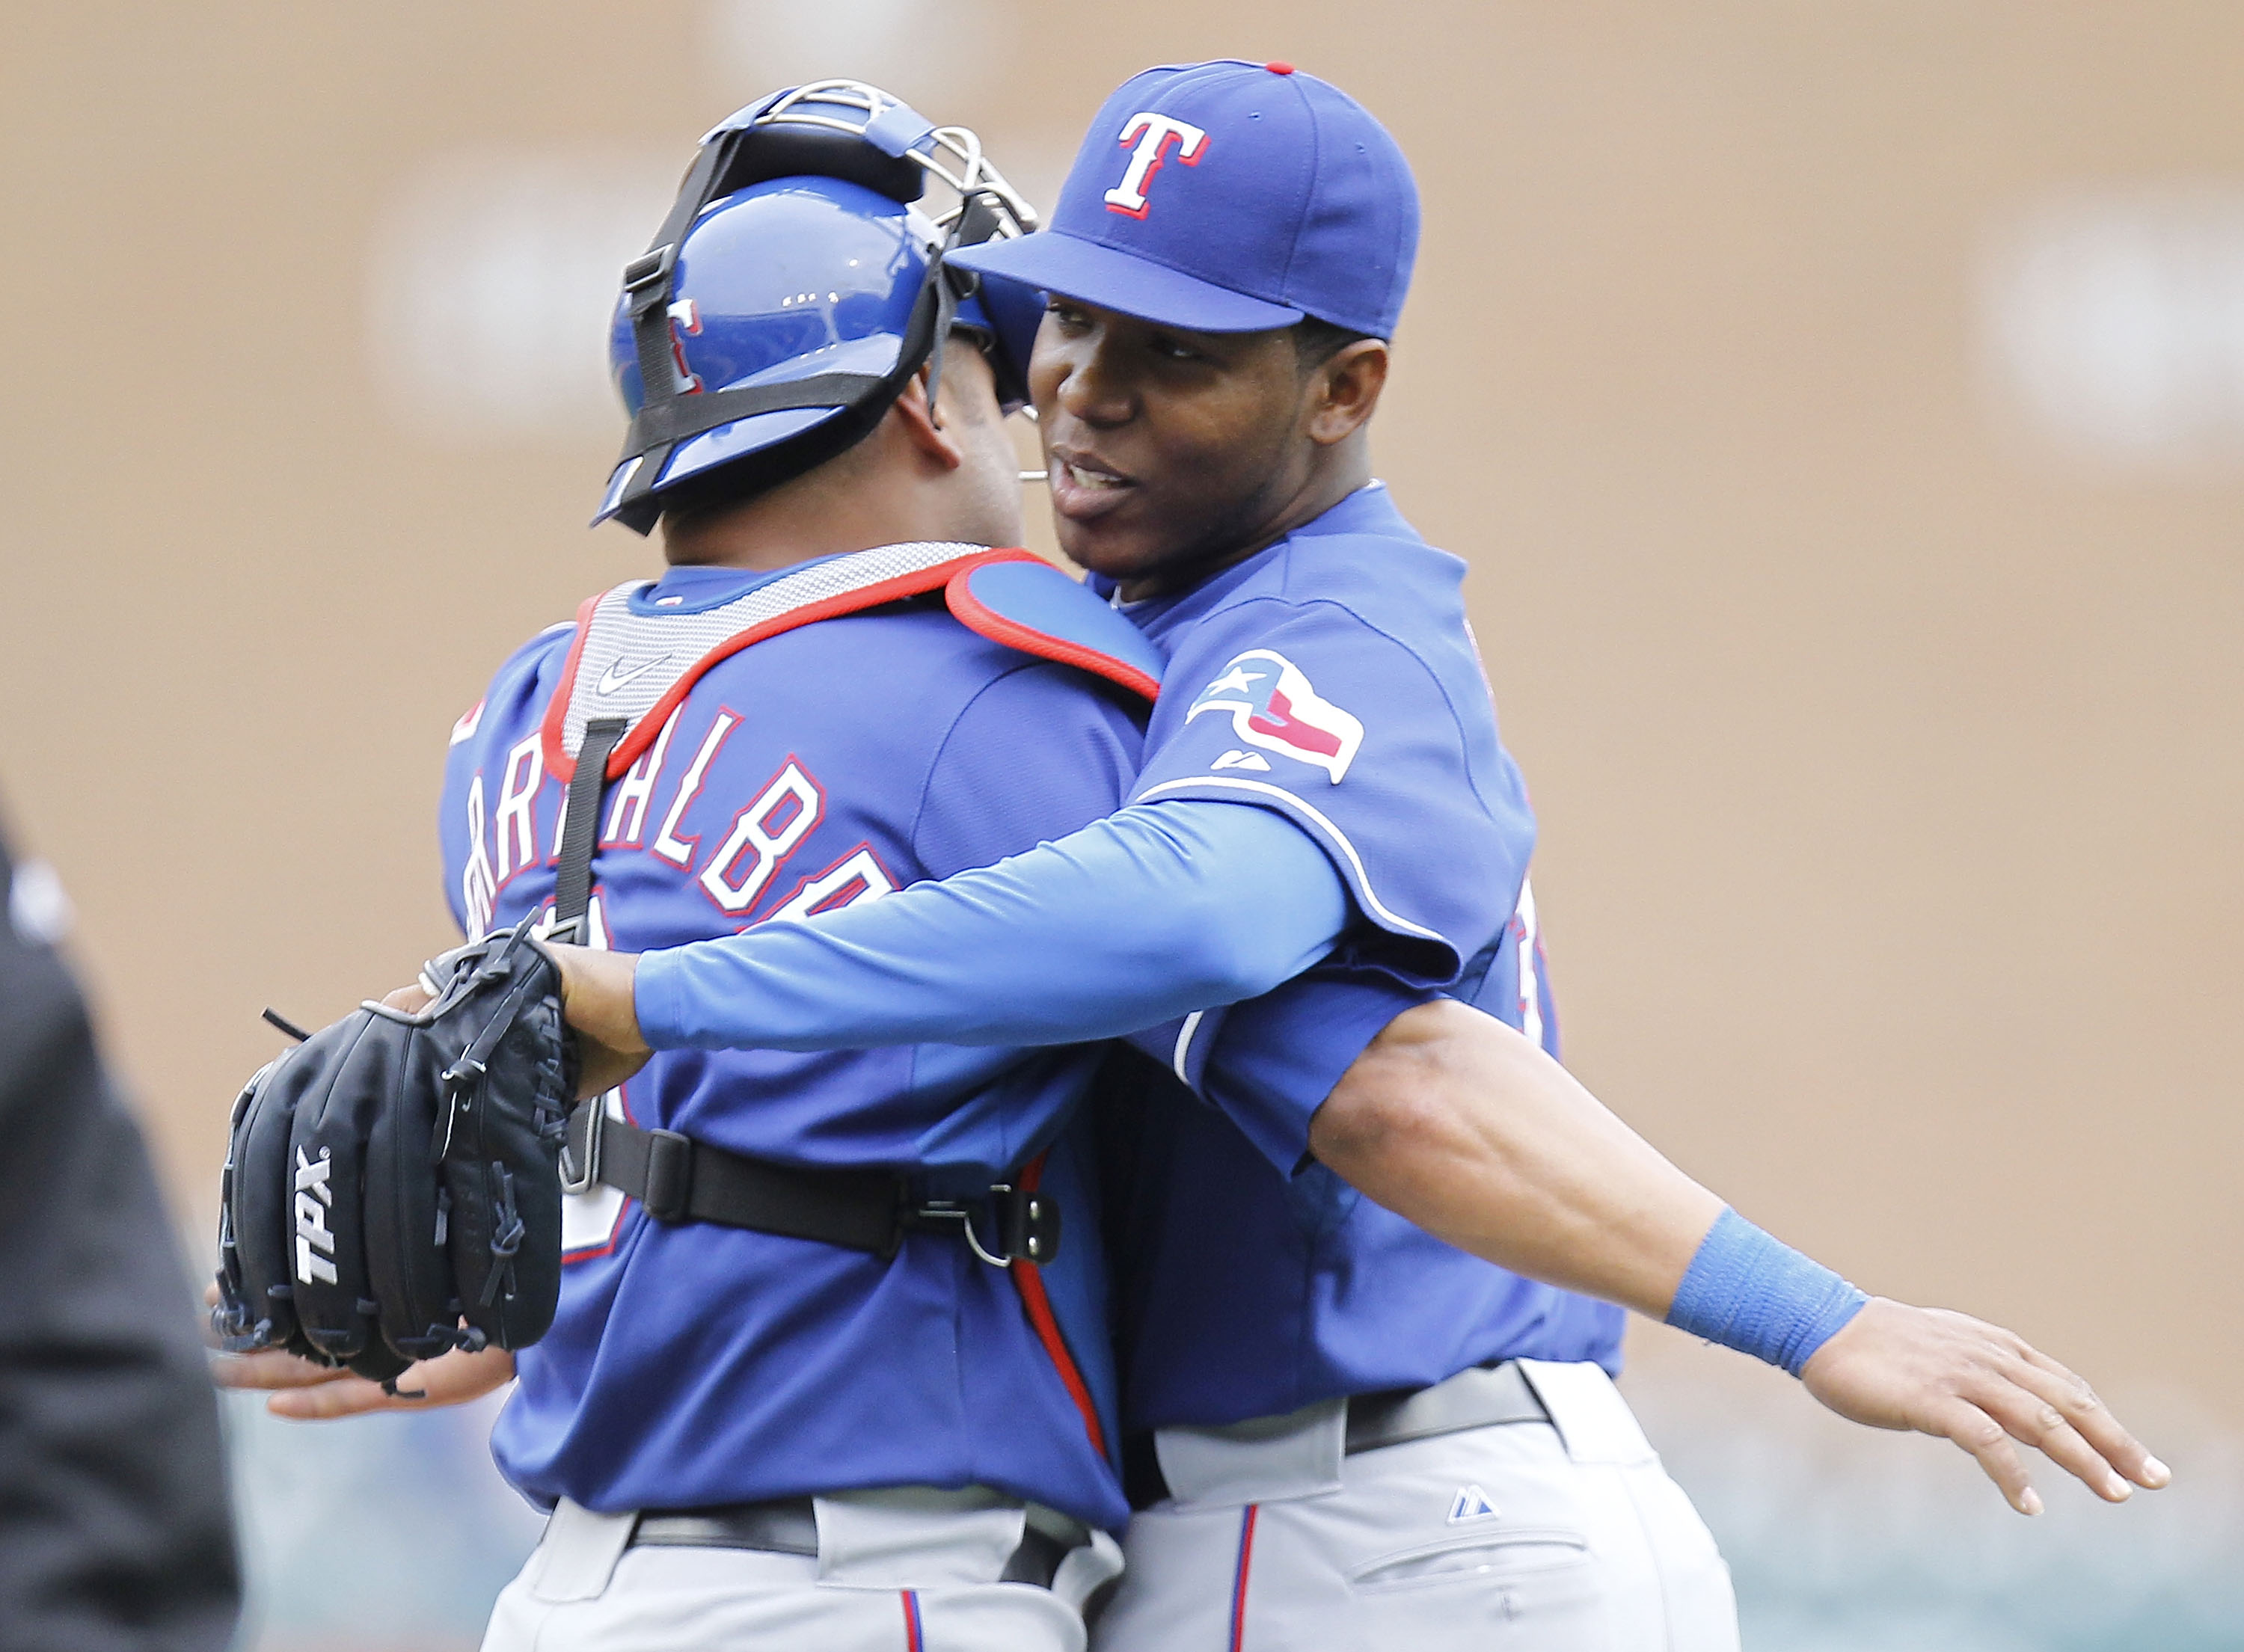 DETROIT, MI - APRIL 11:  Neftali Feliz #30 of the Texas Rangers celebrates a 2-0 win over the Detroit Tigers with Yorvit Torrealba #8 at Comerica Park on April 11, 2011 in Detroit, Michigan.  (Photo by Gregory Shamus/Getty Images)